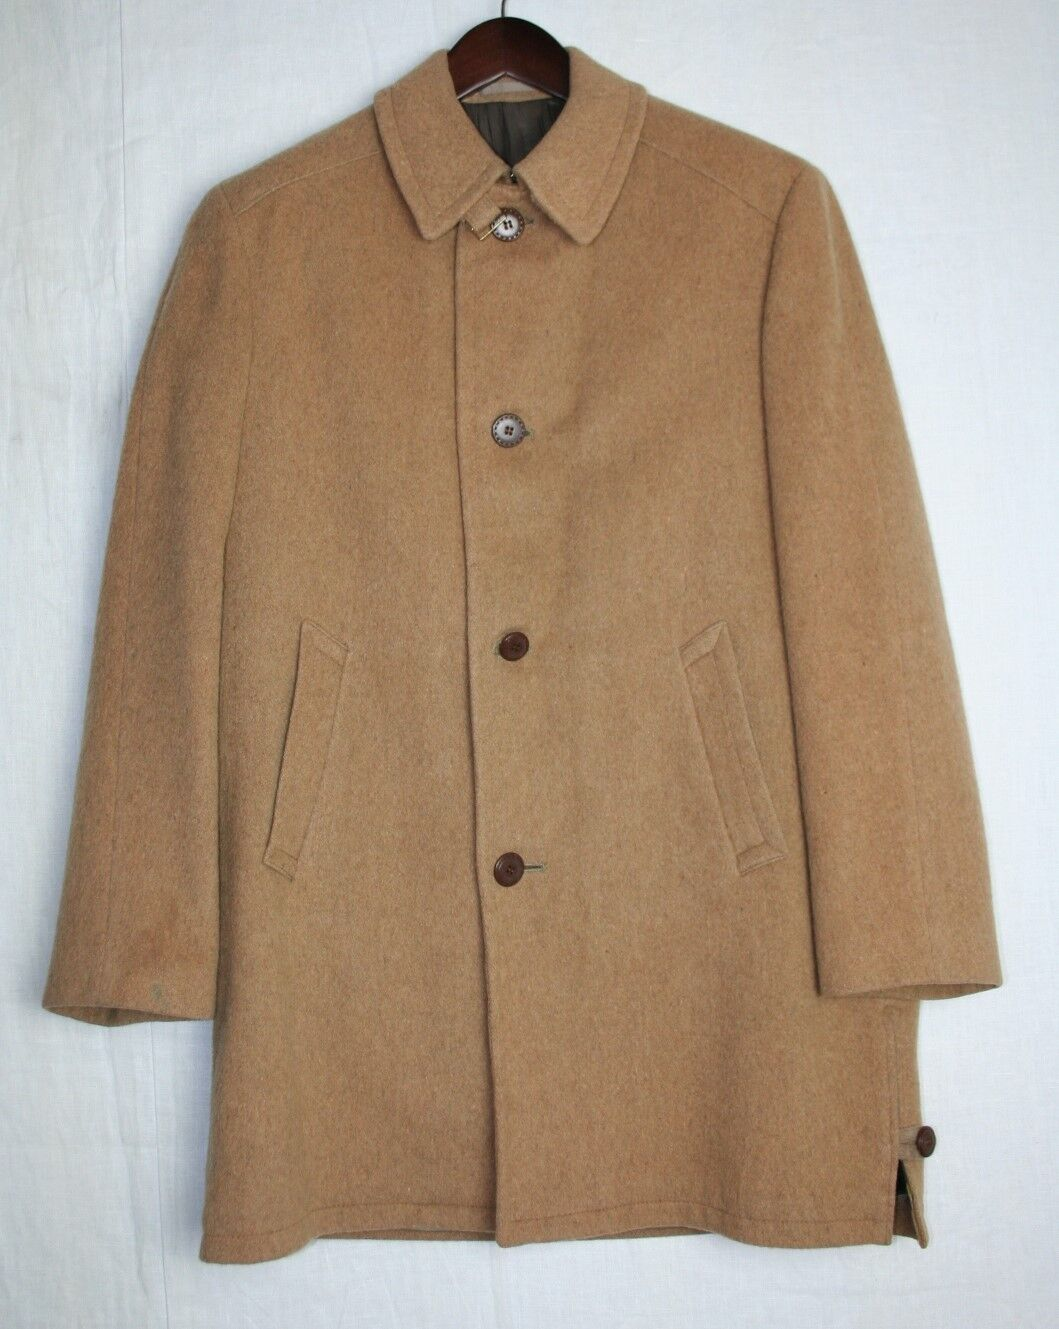 LODEN KING LODENCOAT Wool Your friend in Storm Rain & Snow Water Repellent Sz 38